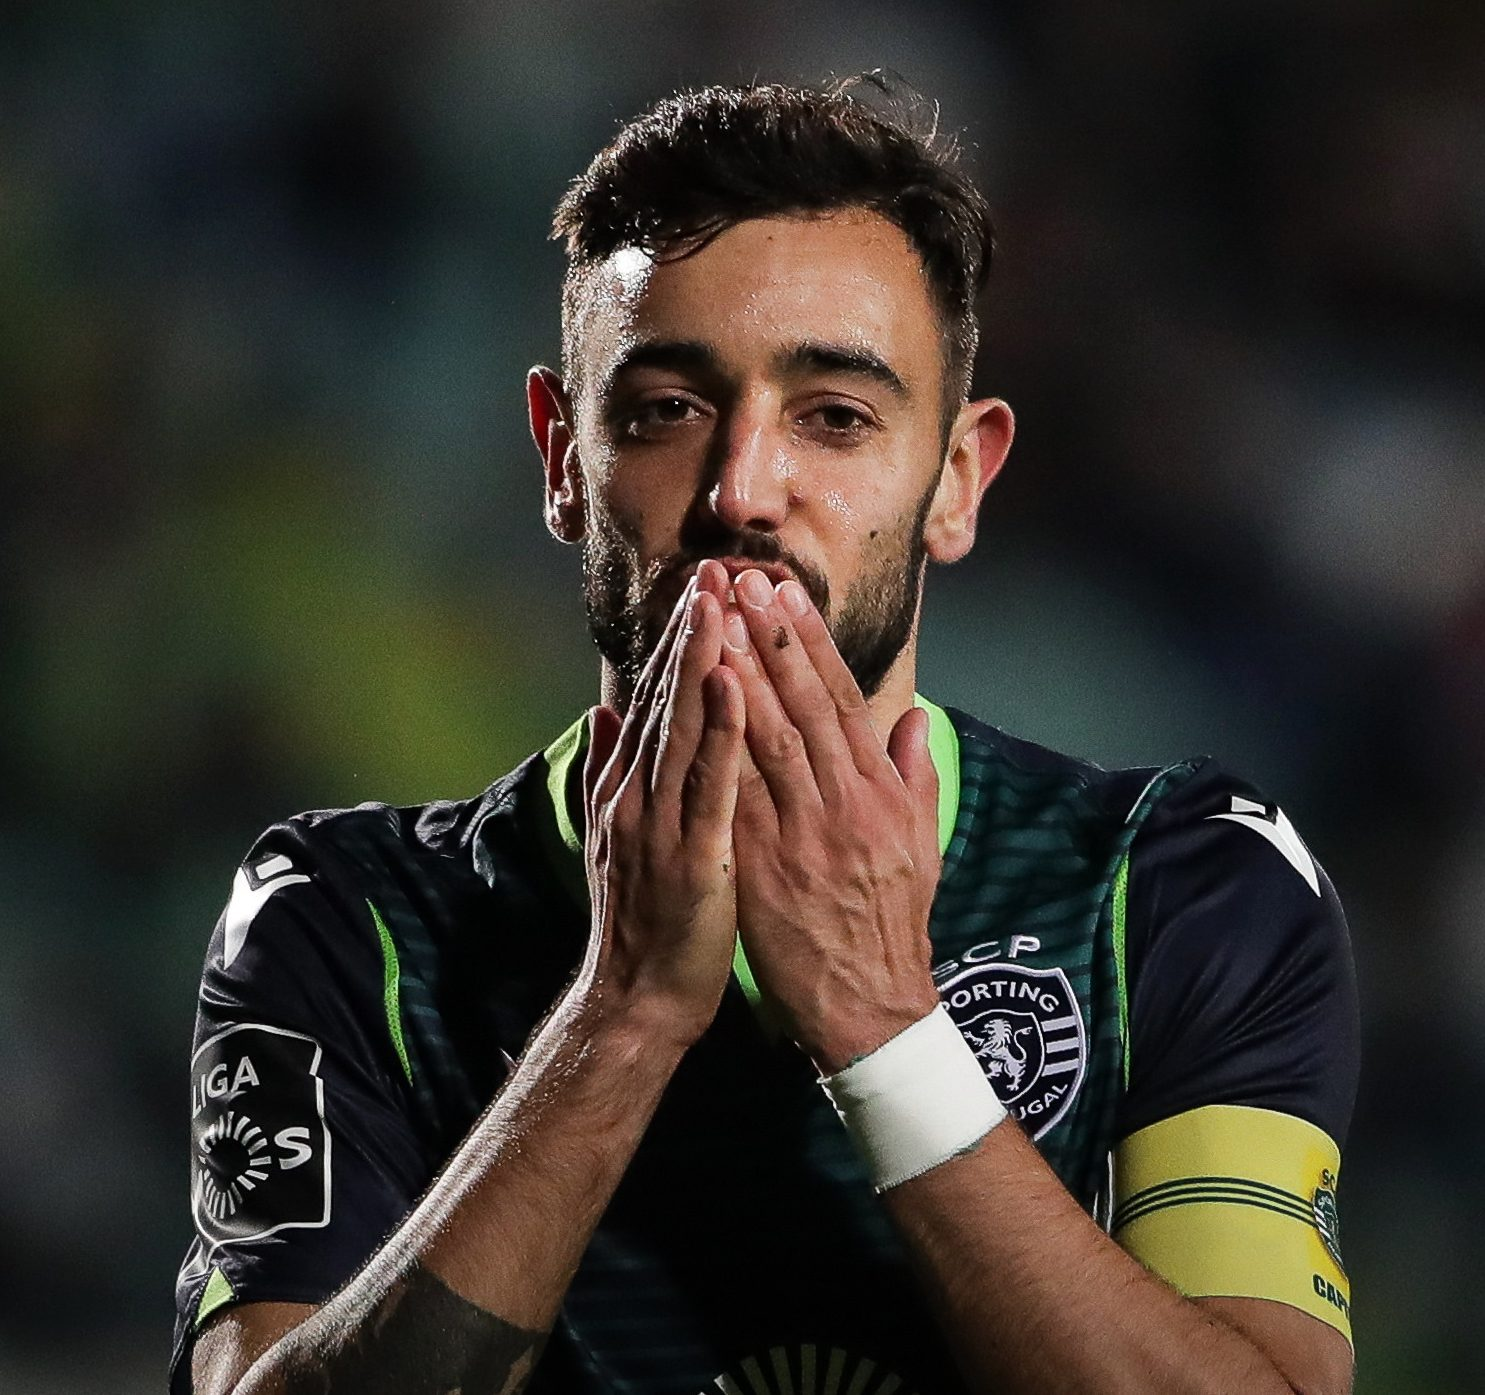 Manchester United Hold Talks With Sporting Lisbon To Sign Fernandes – Reports